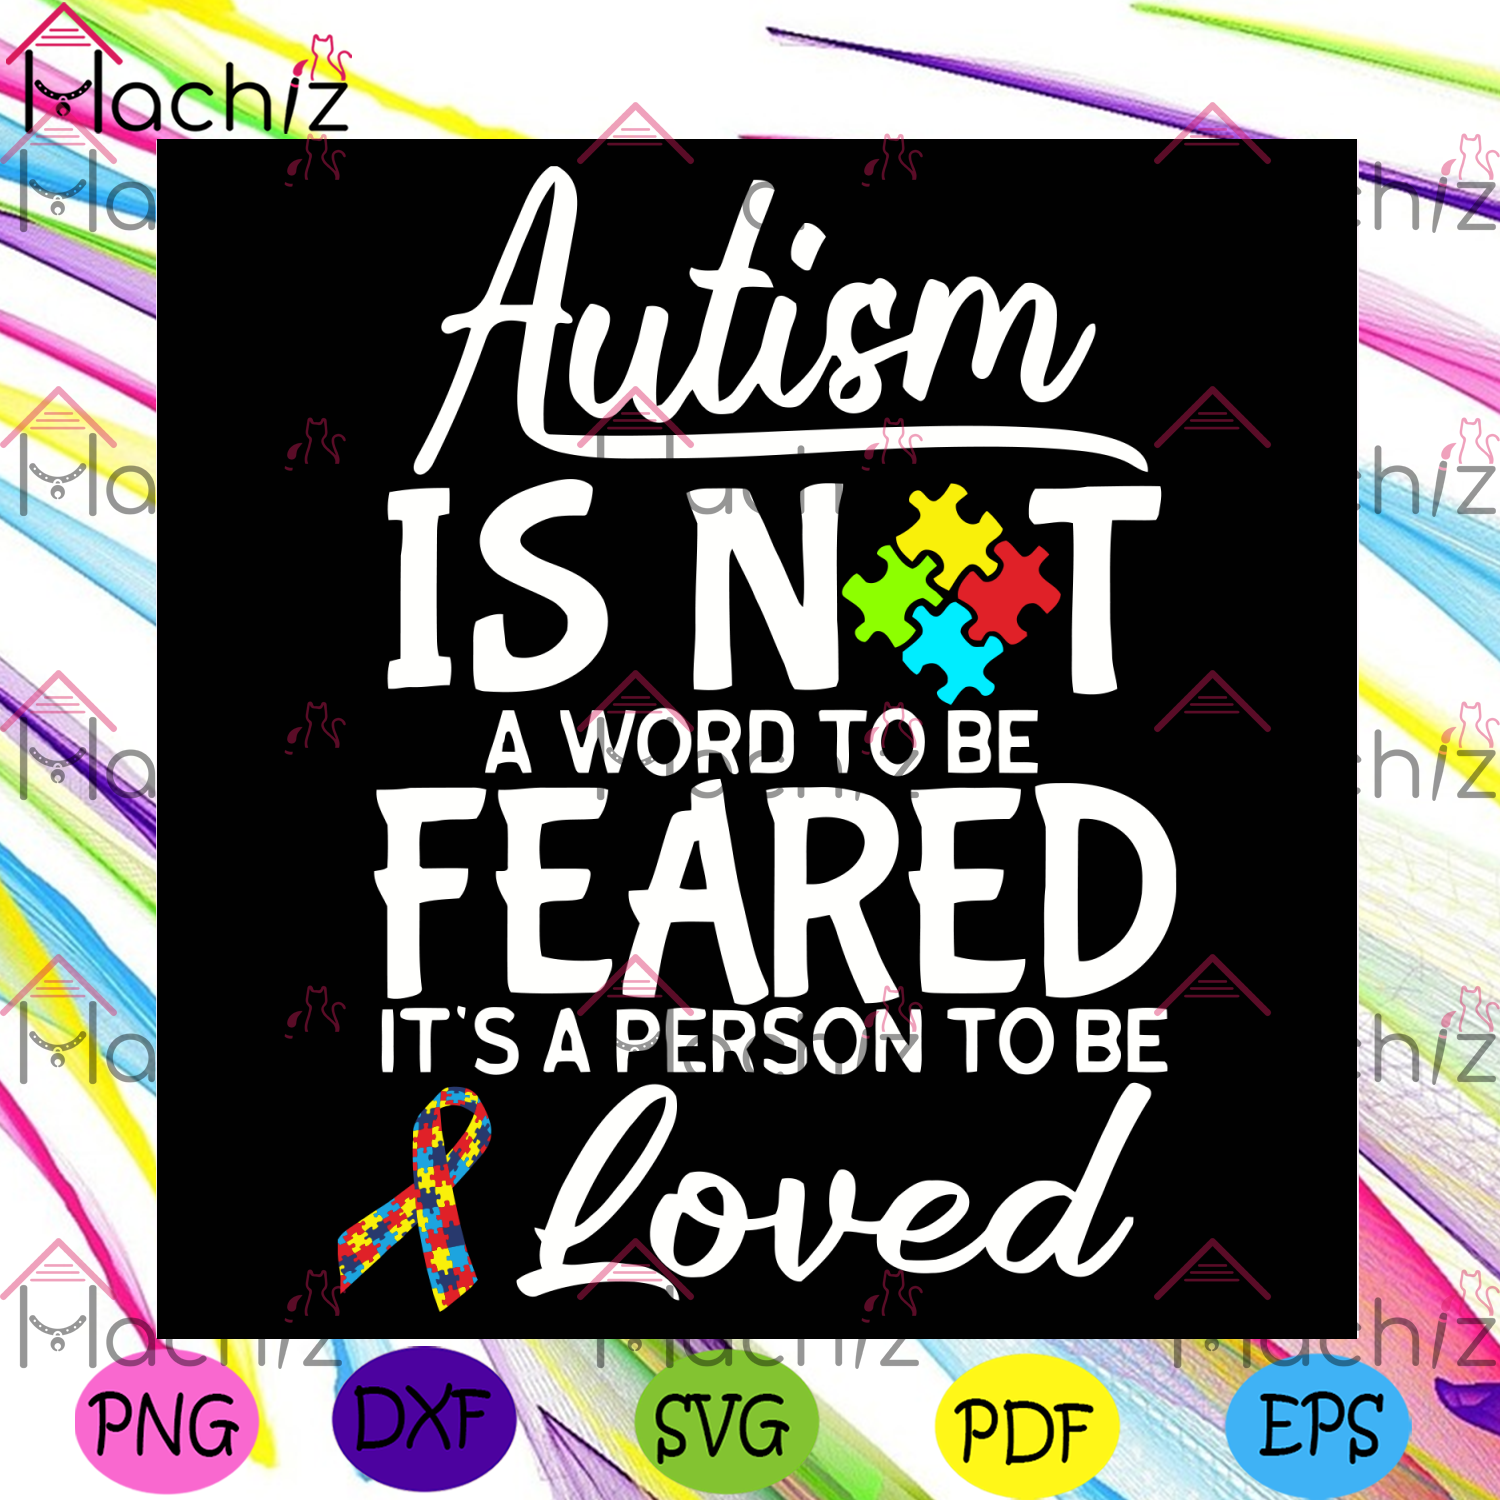 Autism Is Not A Word To Be Feared Svg, Autism Svg, Autism Awareness Svg, Autism Love, Autism Quote Svg, Autism Quote Gift, Autism Awareness Gift, Autism Awareness Shirt, Svg Cricut, Silhouette Svg Files